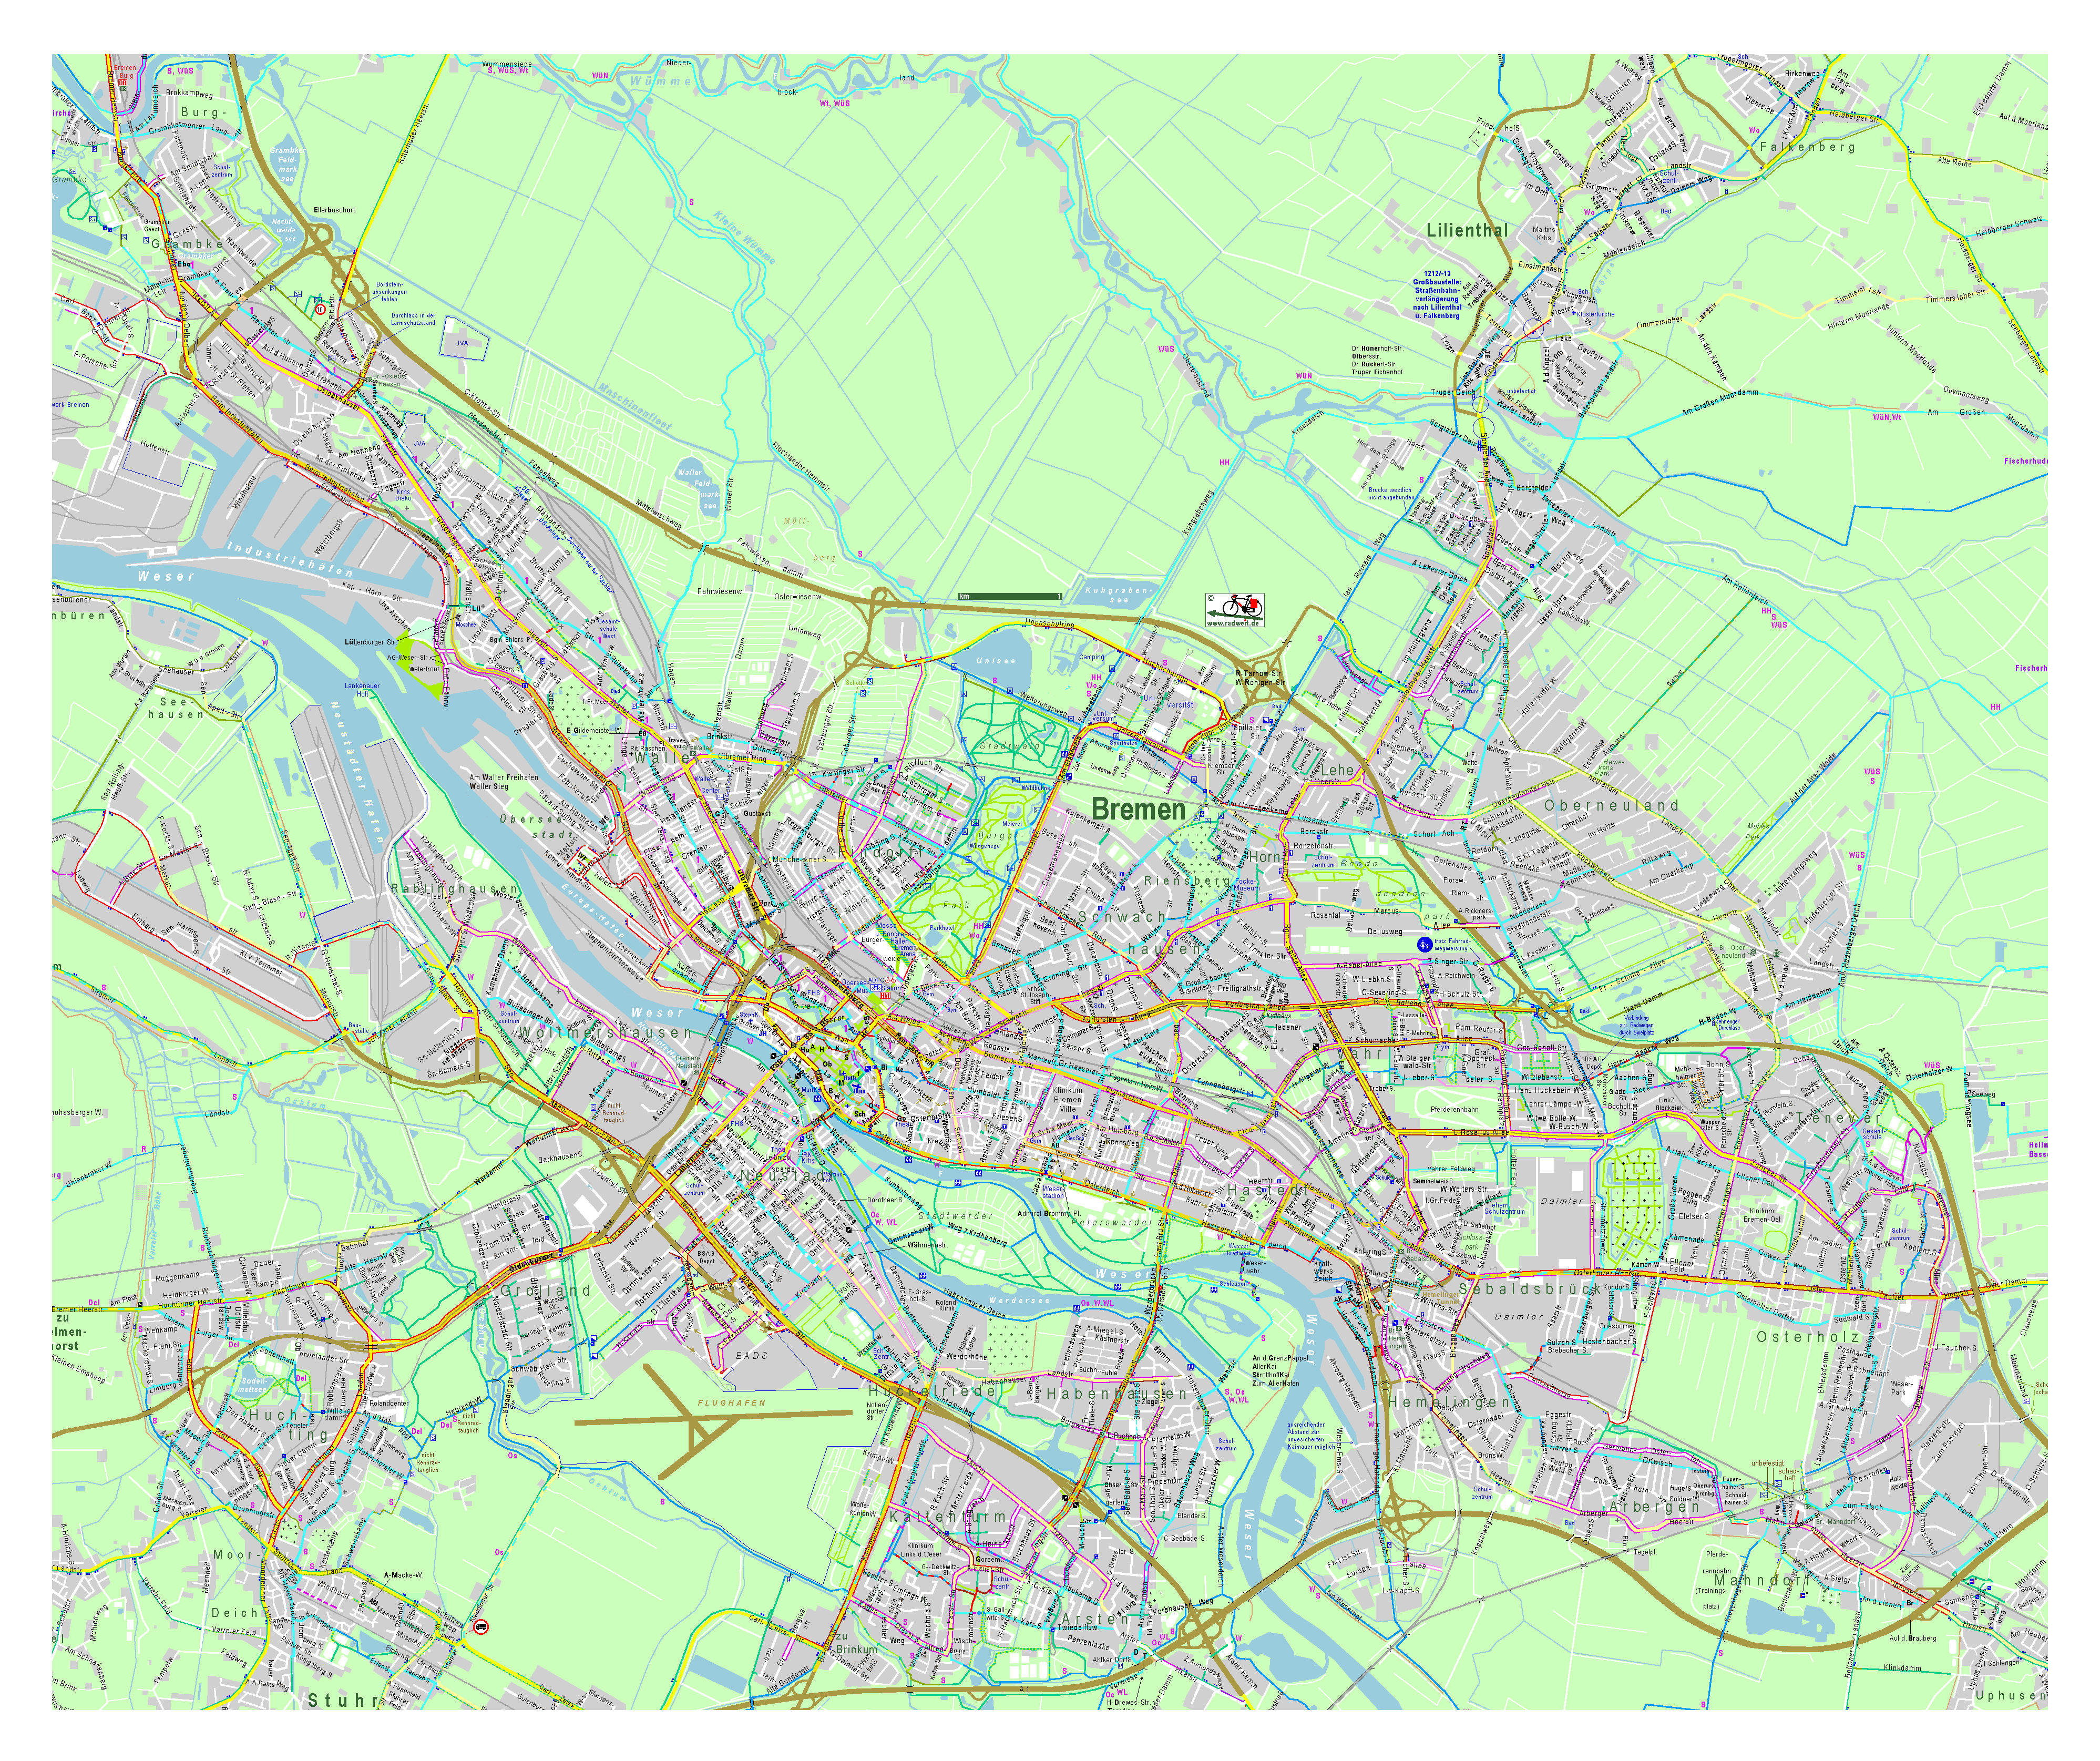 Map Of Bremen Germany.Large Detailed Map Of Bremen City Bremen Germany Europe